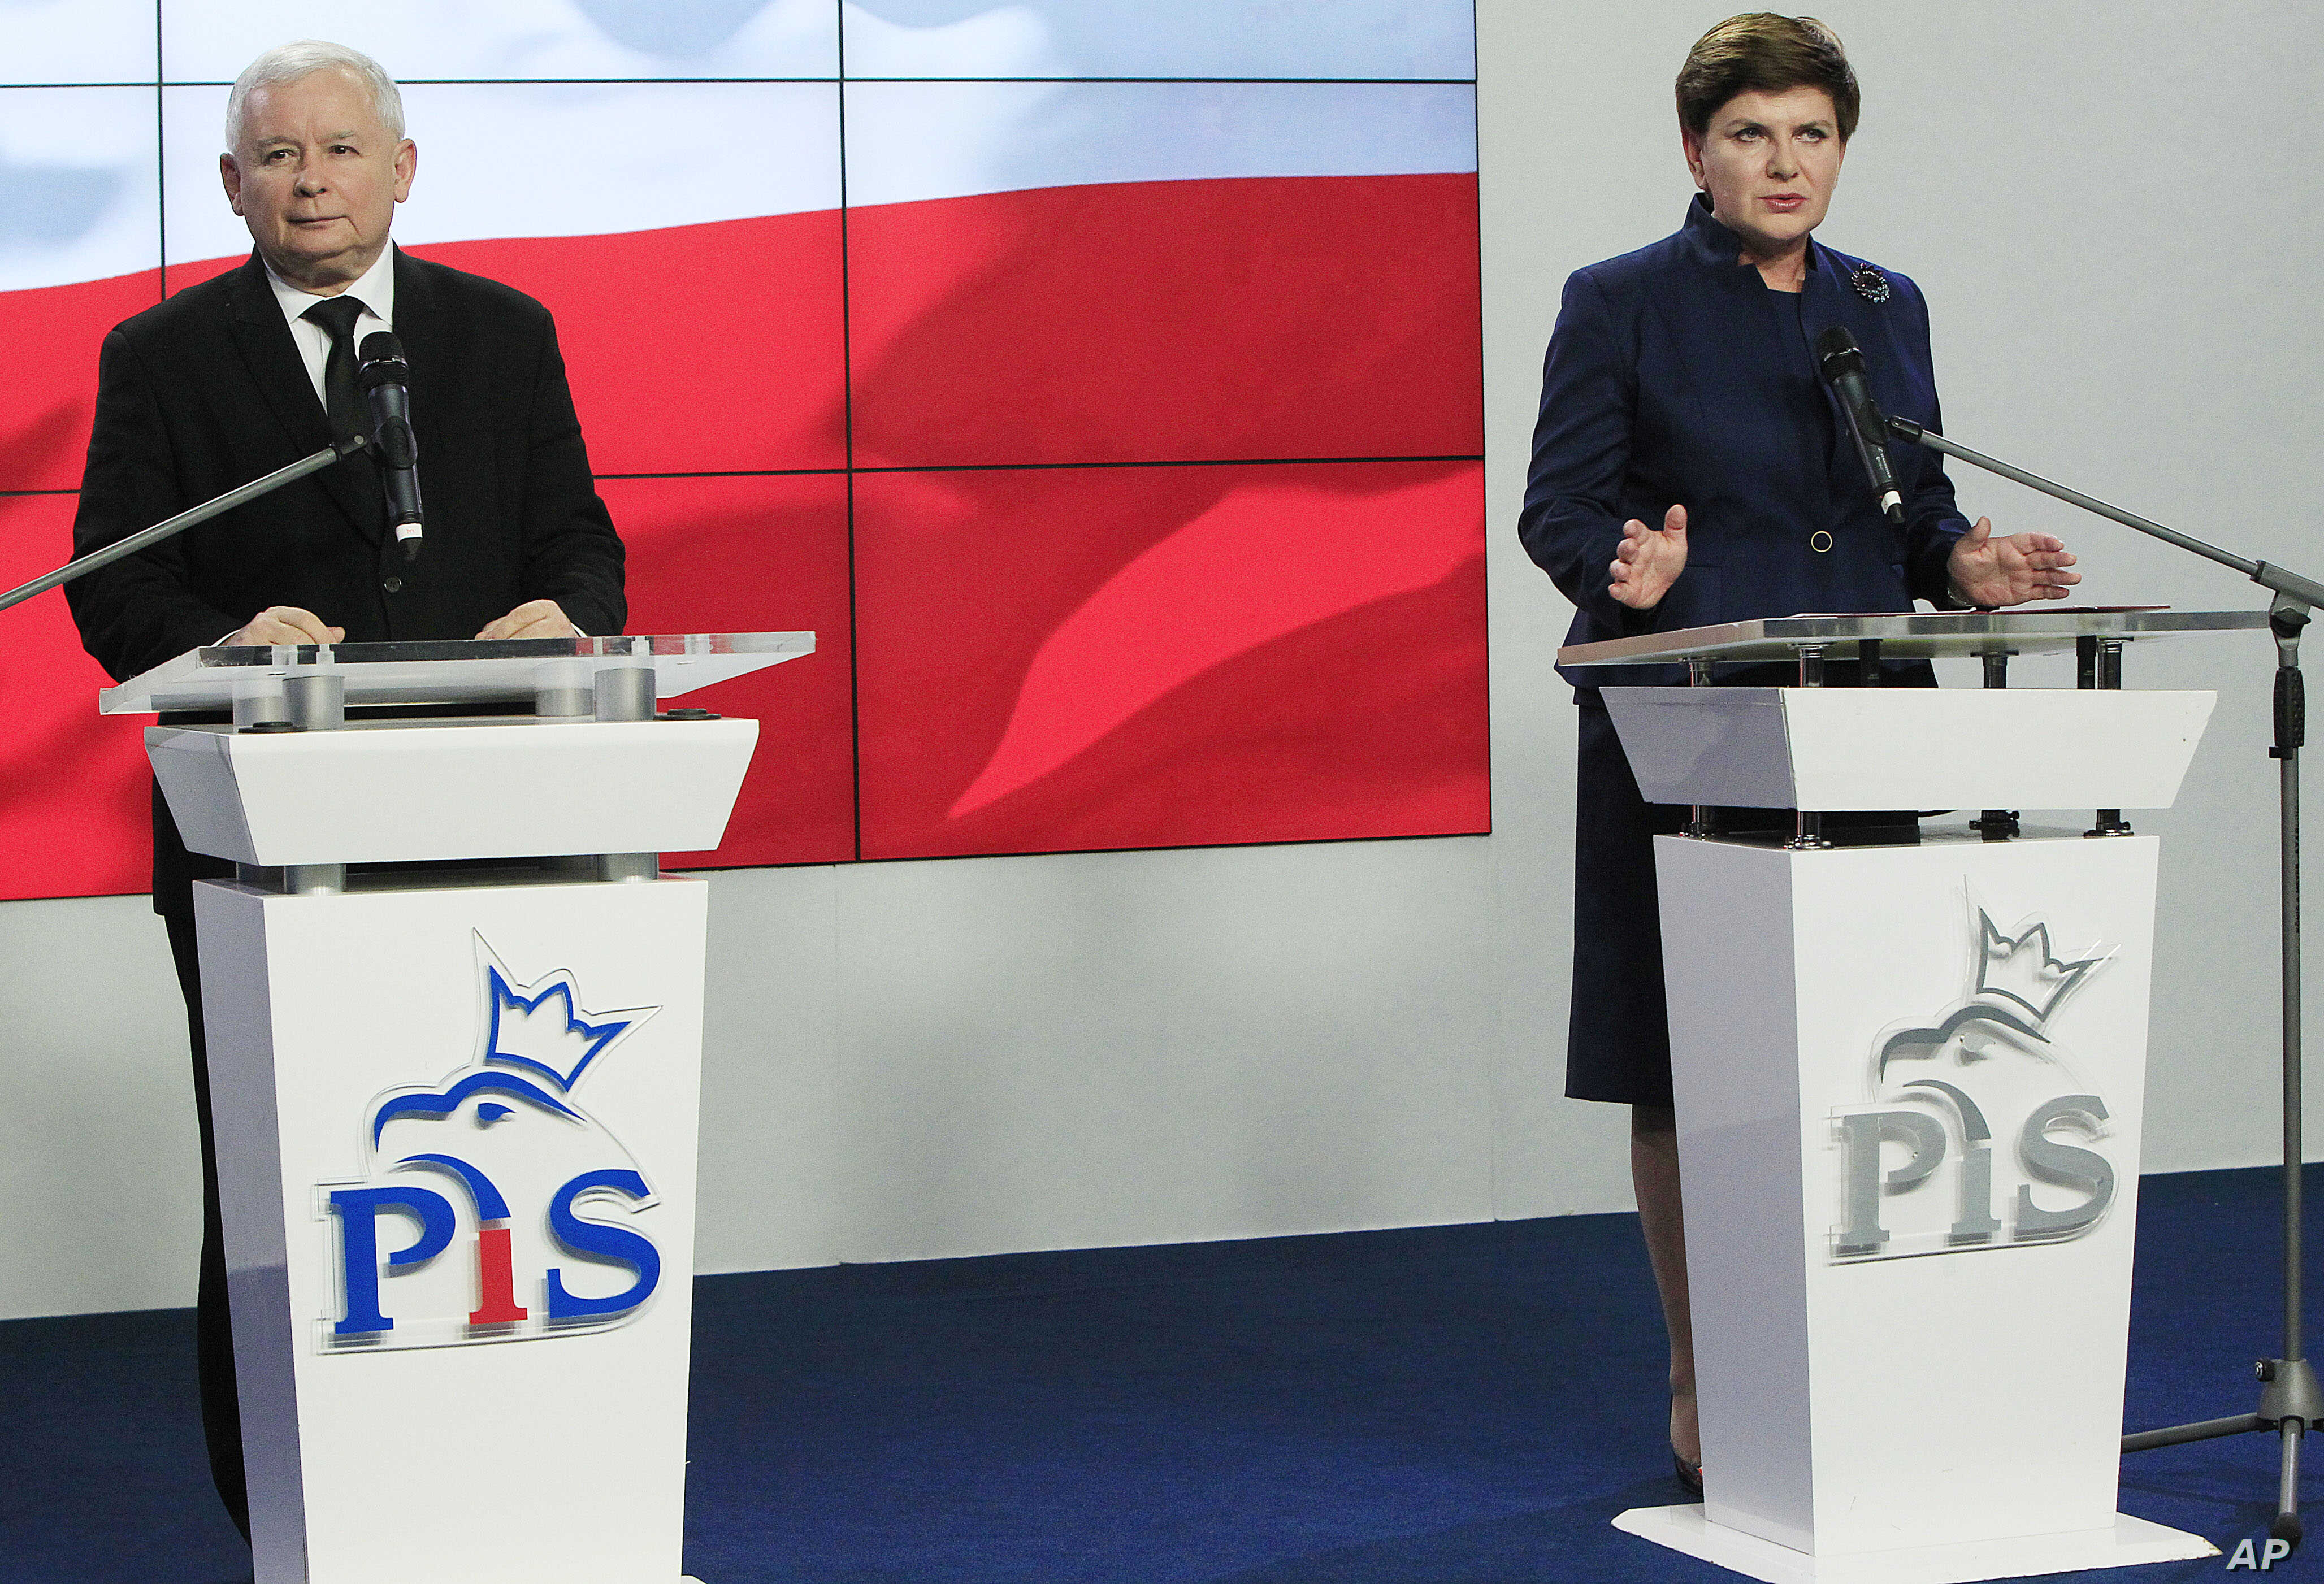 Leader of Poland's conservative Law and Justice party Jaroslaw Kaczynski, left, listens, as candidate for the prime minister's post Beata Szydlo announces names for the new government in Warsaw, Poland, Nov. 9, 2015.